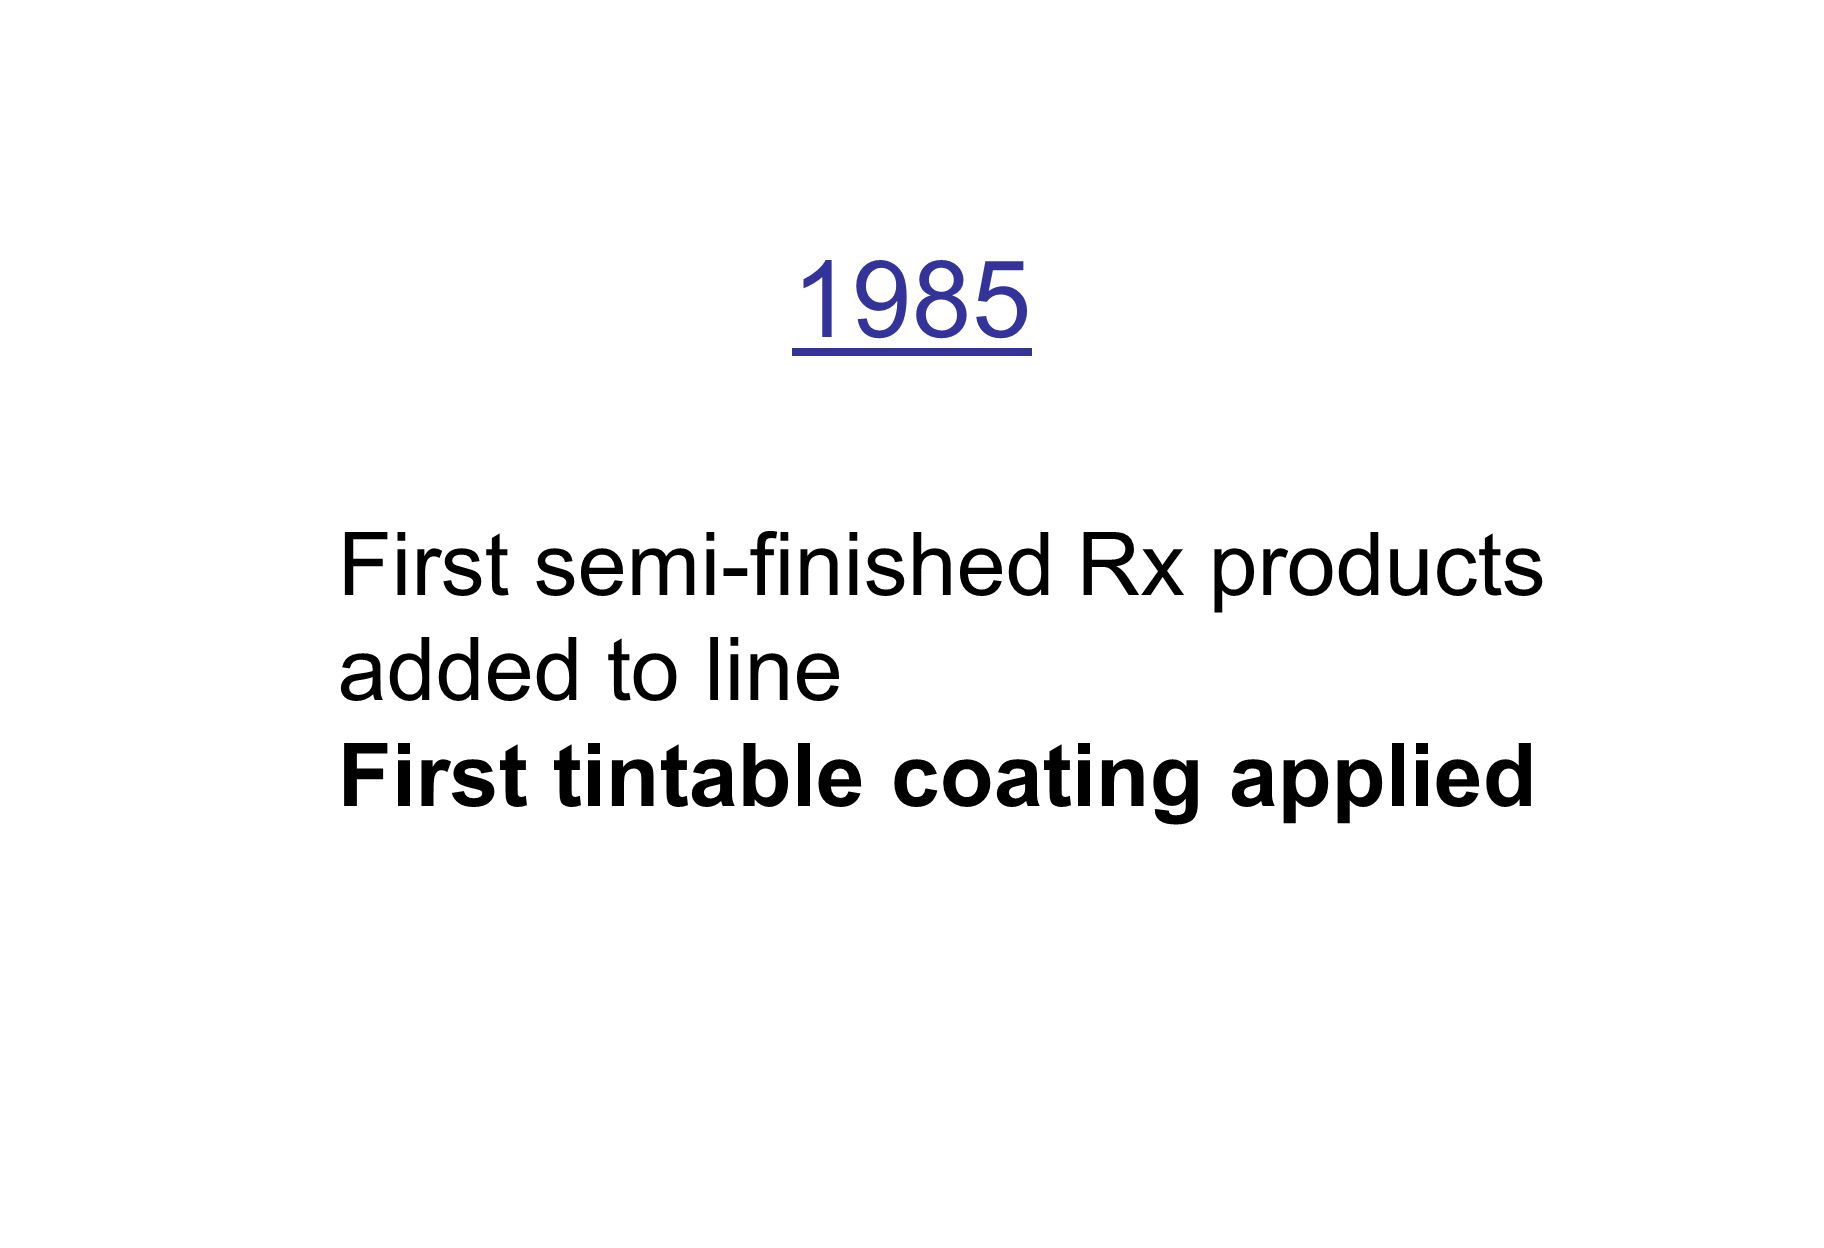 1985 First semi-finished Rx products added to line First tintable coating applied